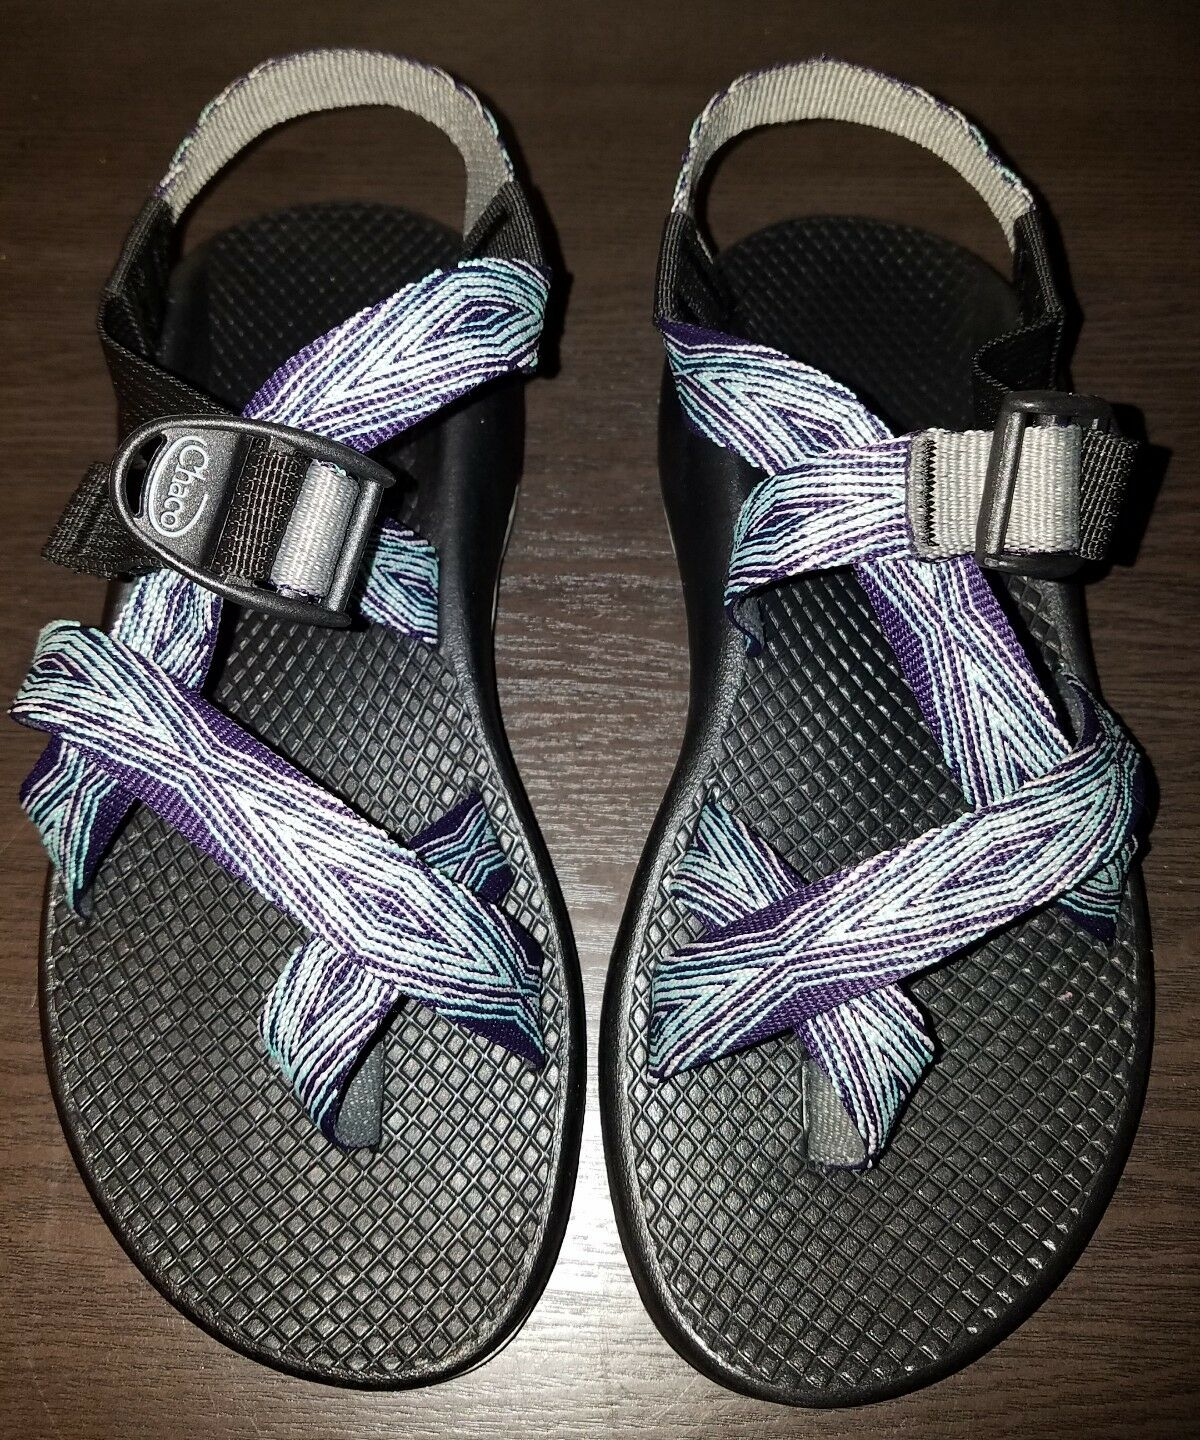 EUC Damenschuhe CHACO purple and pink toe in  sport Sandale. 7M